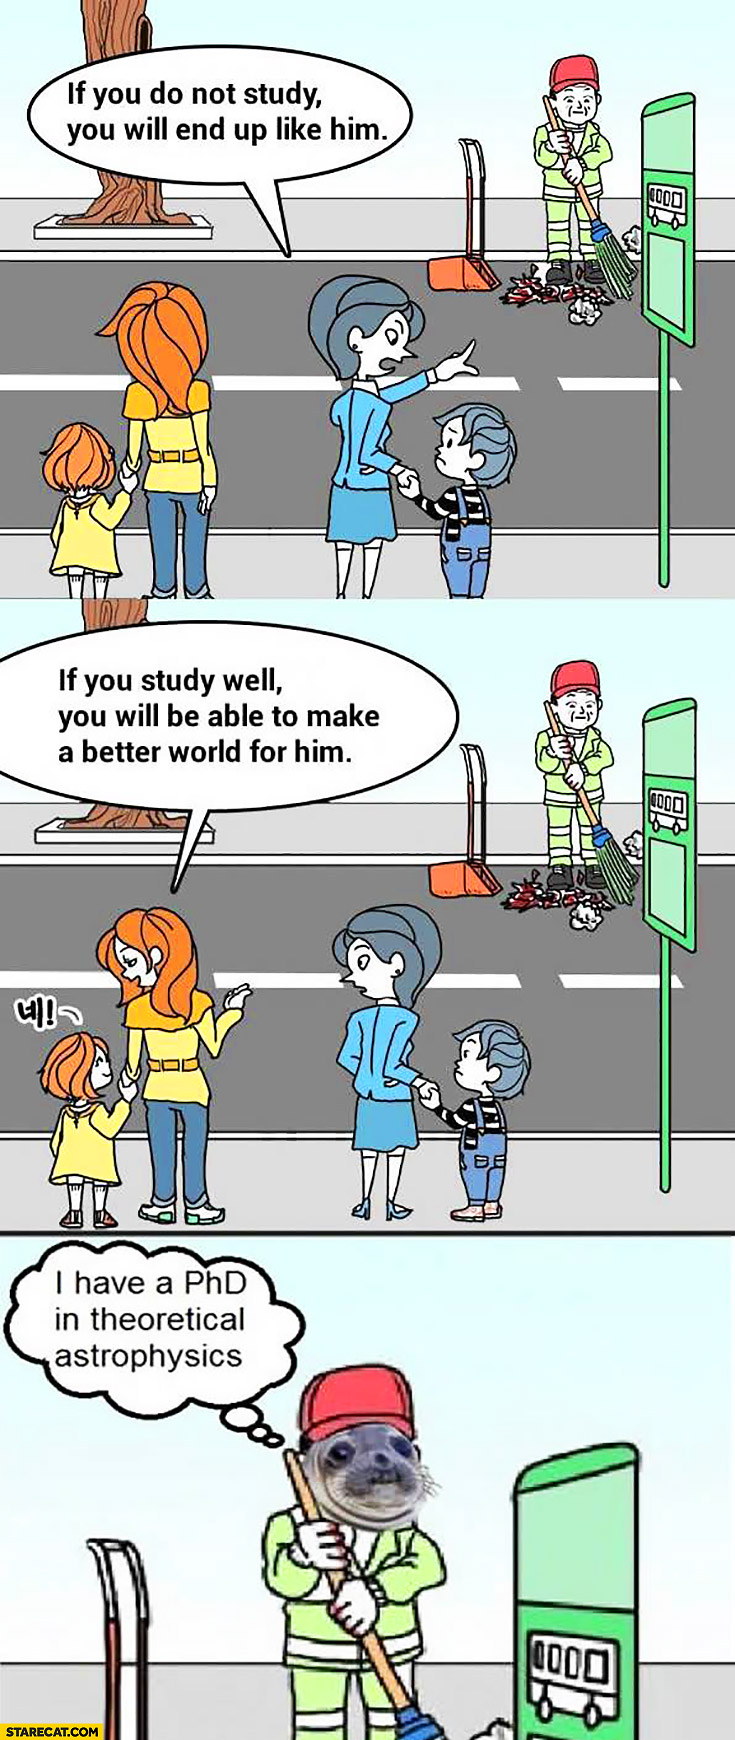 If you do not study well you will end up like him. I have a PhD in theoretical astrophysics comic